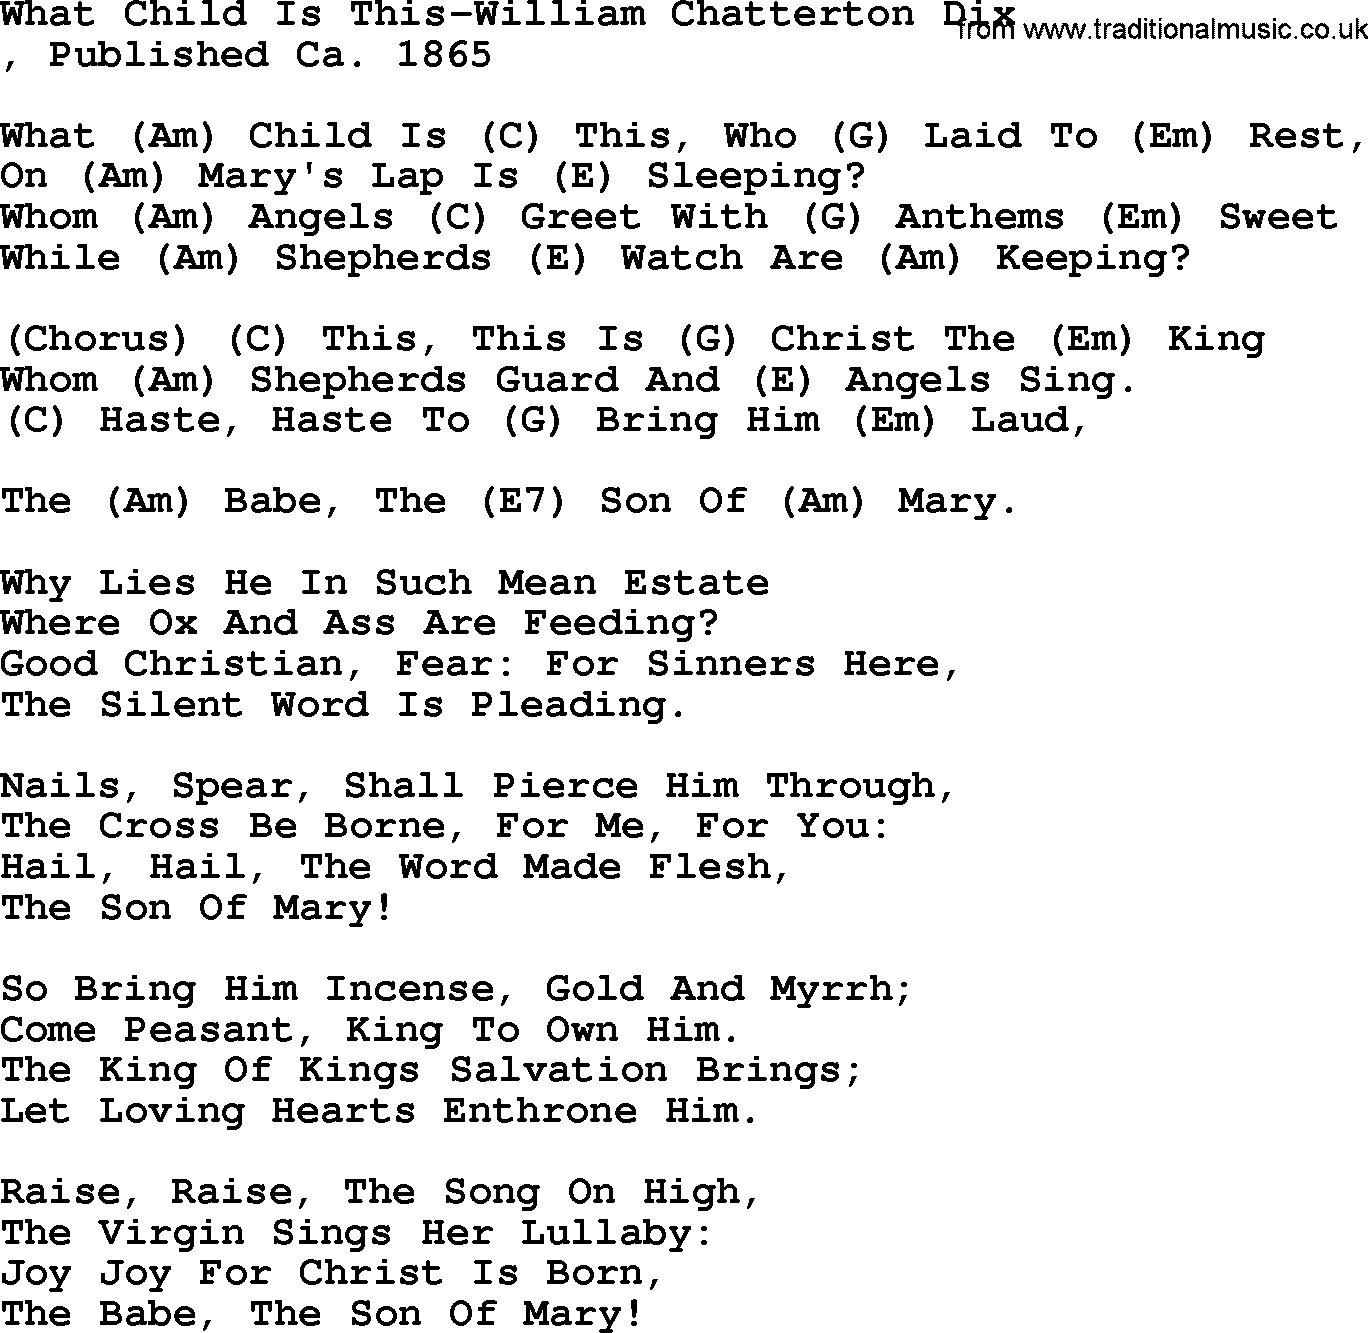 Country Music:What Child Is This-William Chatterton Dix Lyrics and Chords